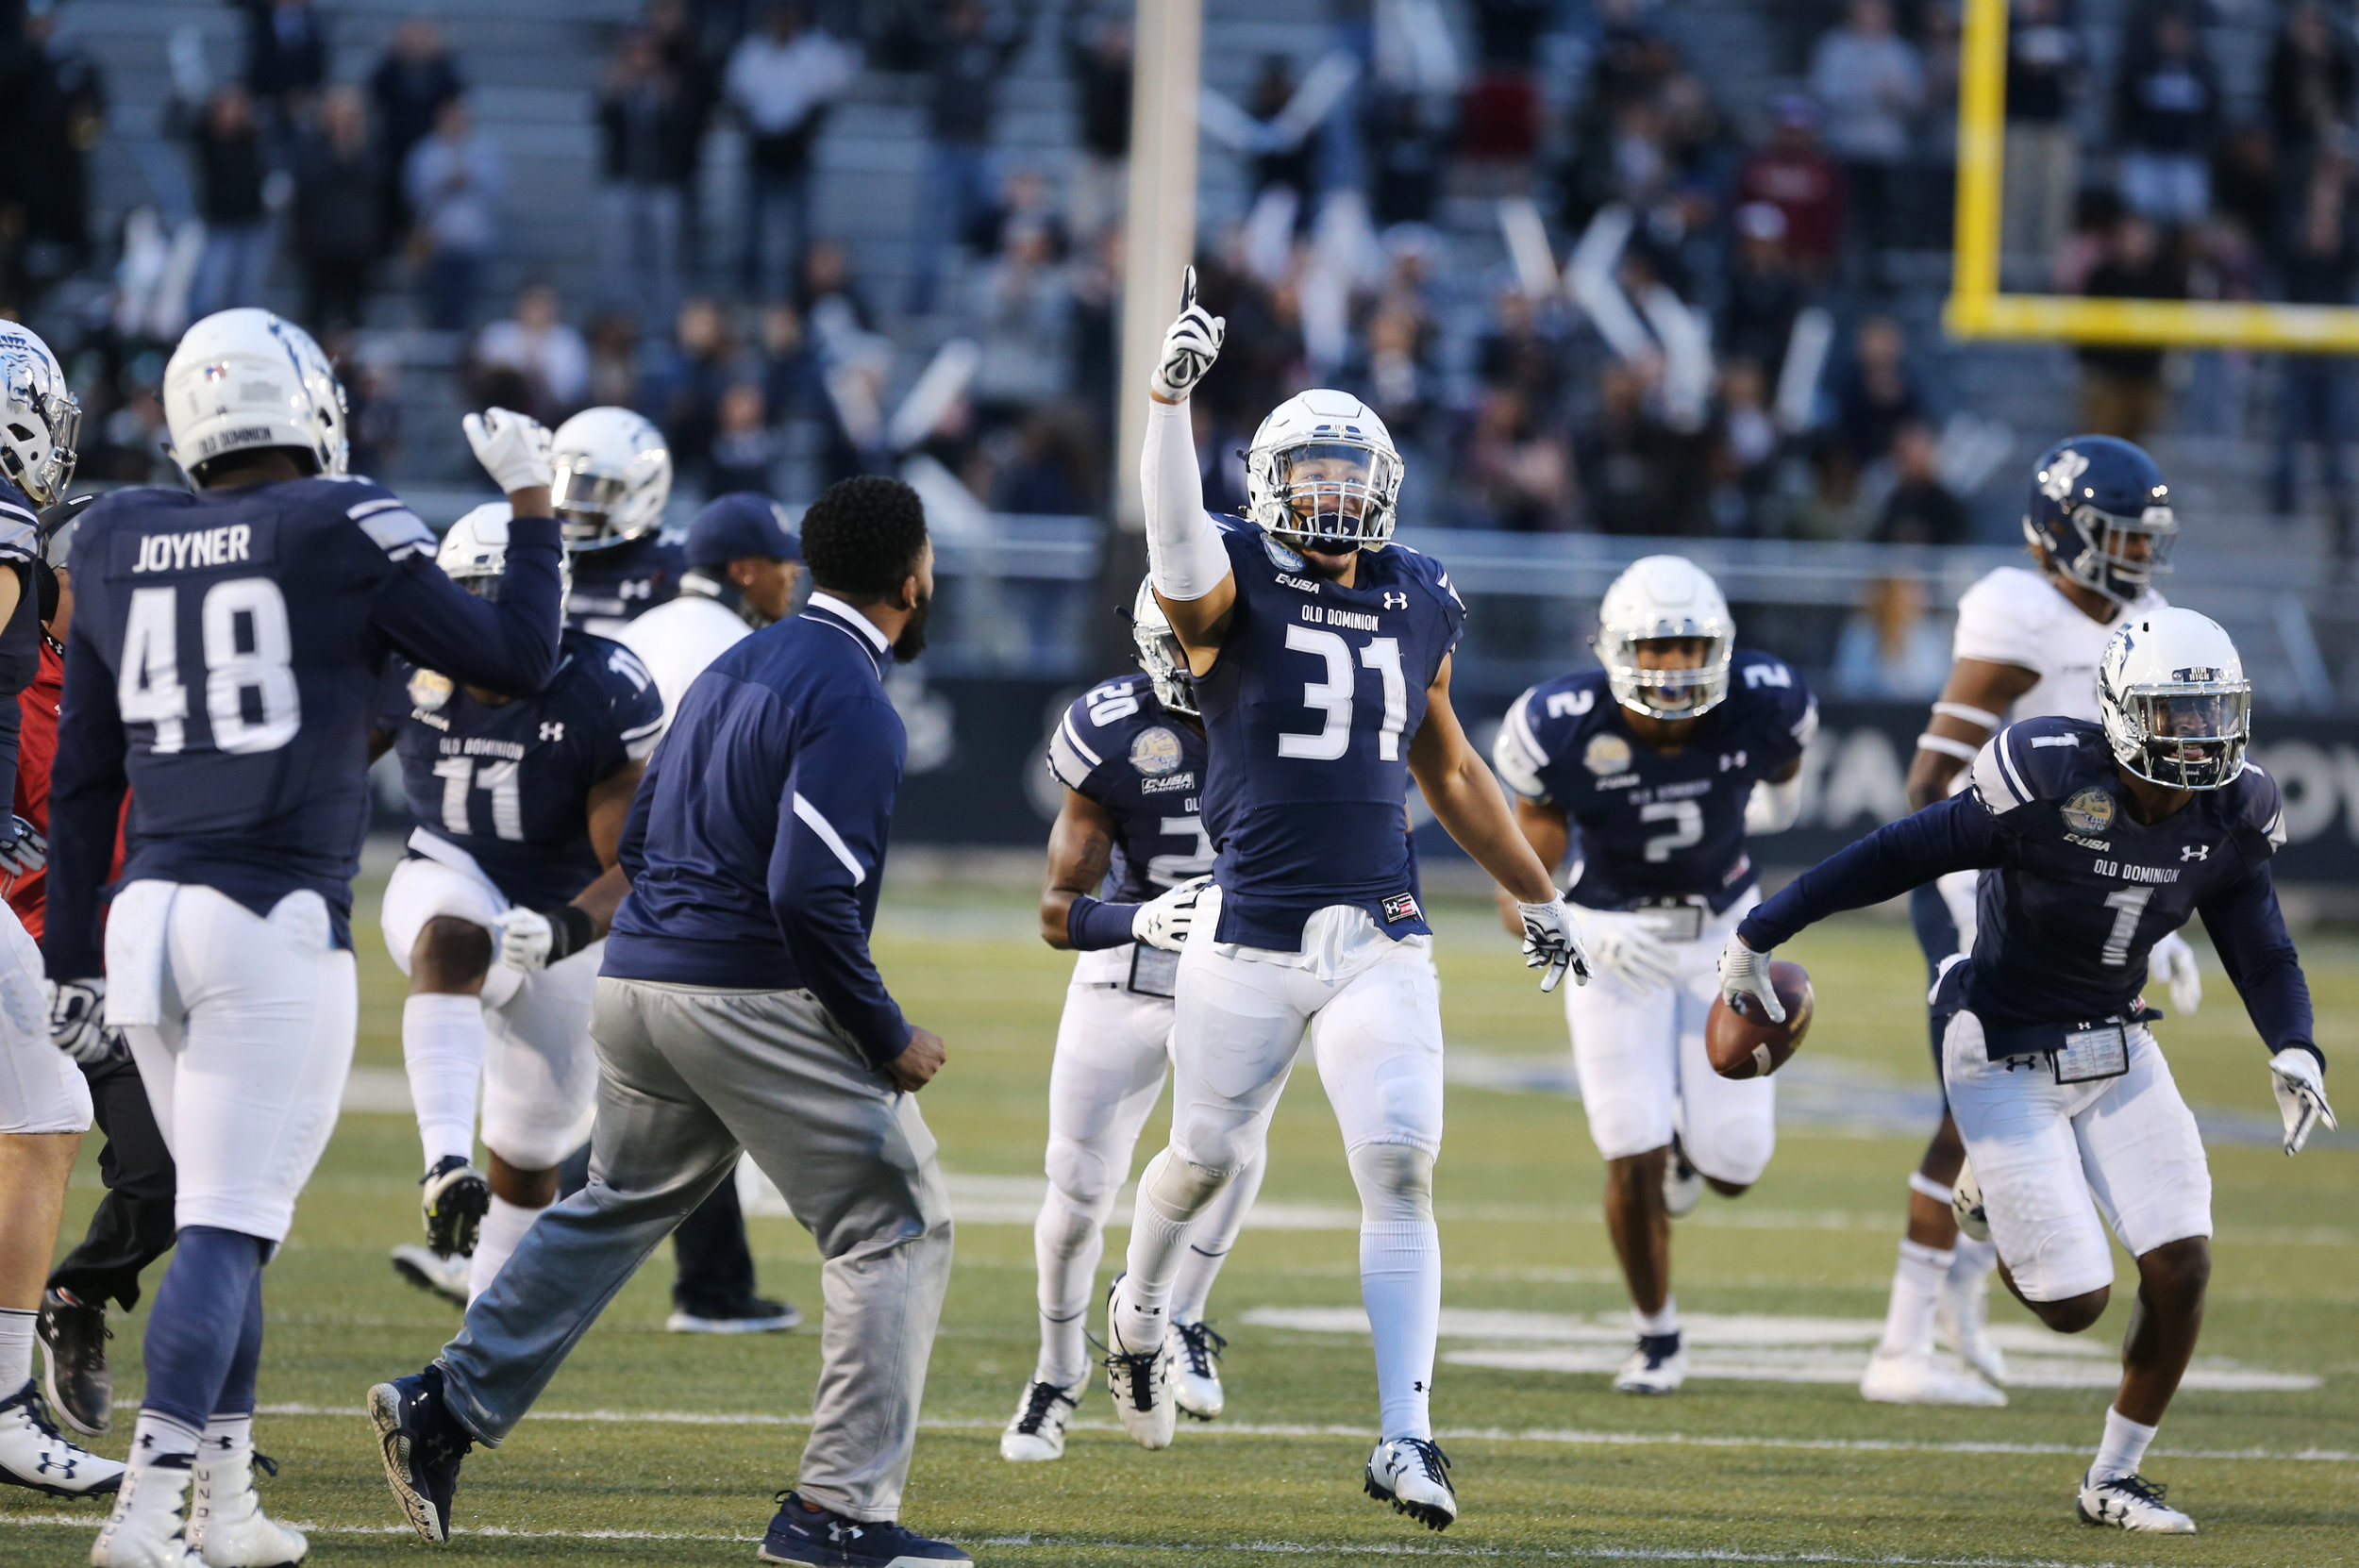 Old Dominion's Sean Carter, center, celebrates after intercepting a pass intended for a Rice receiver to seal ODU's 24-21 win over Rice in the closing seconds of the fourth quarter, Saturday, Nov. 18, 2017 at Foreman Field in Norfolk.